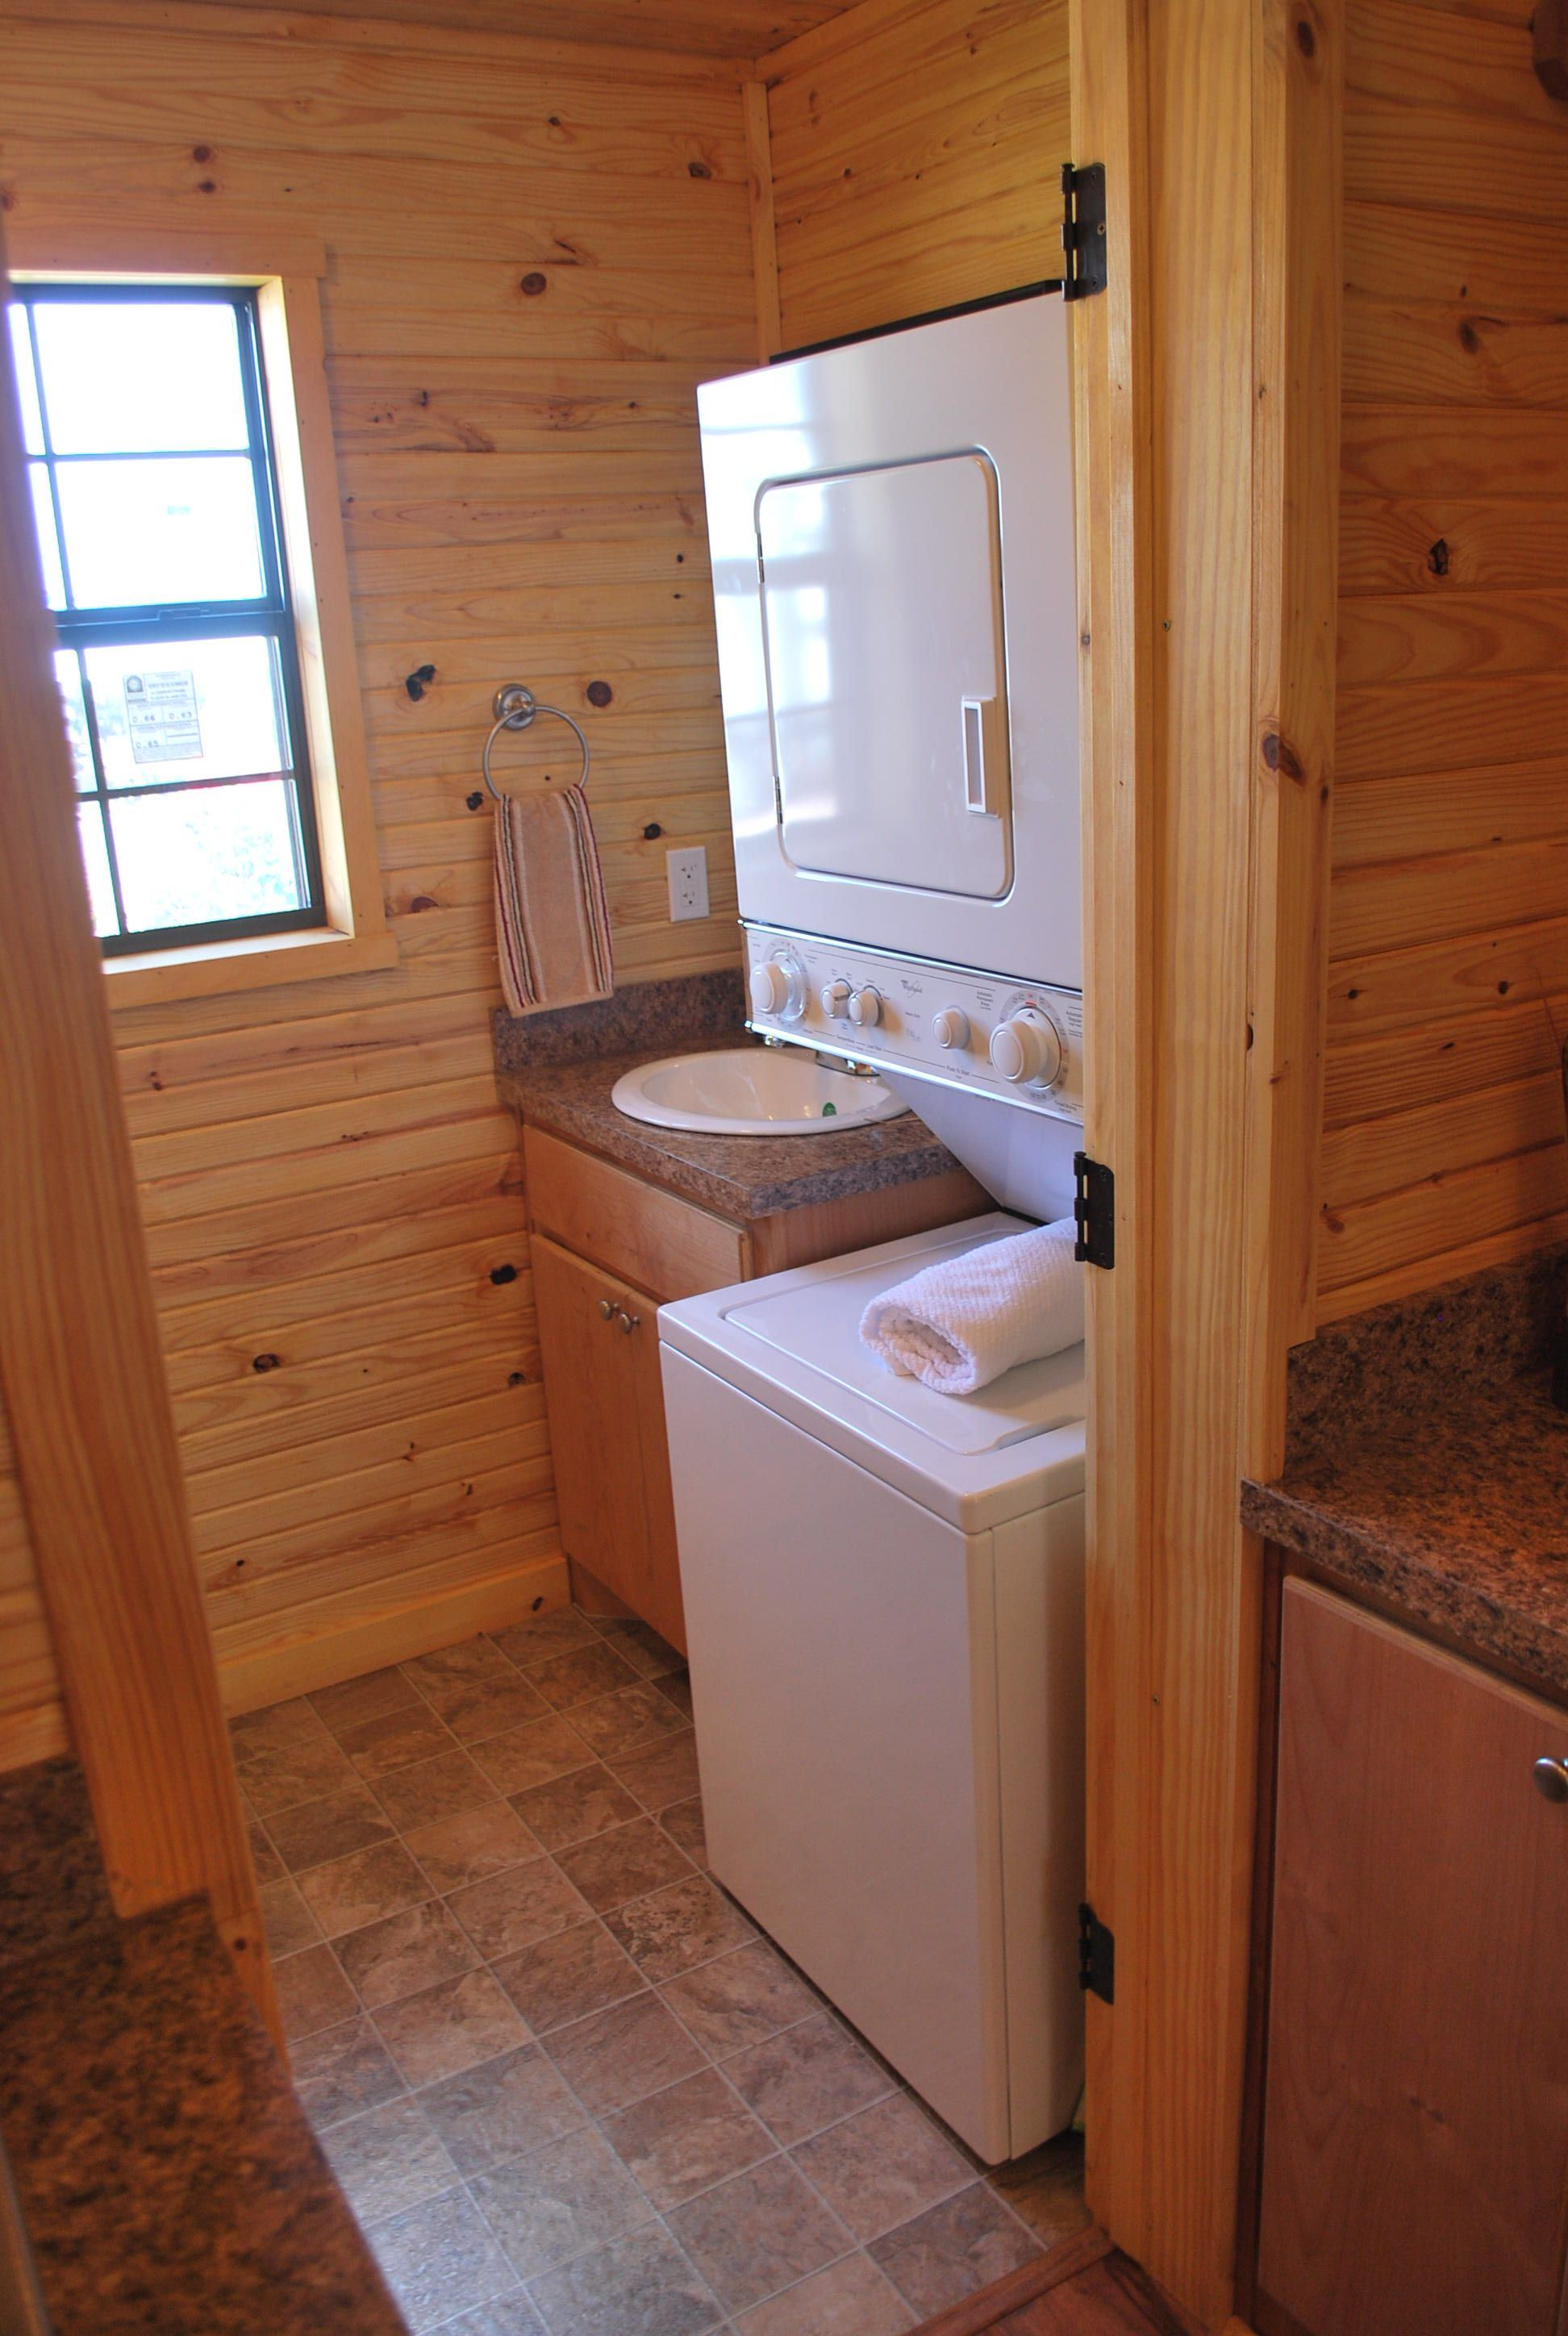 12 X 30 Hunters Cabin Interior Diy Tiny House Building A Cabin Small House Plans